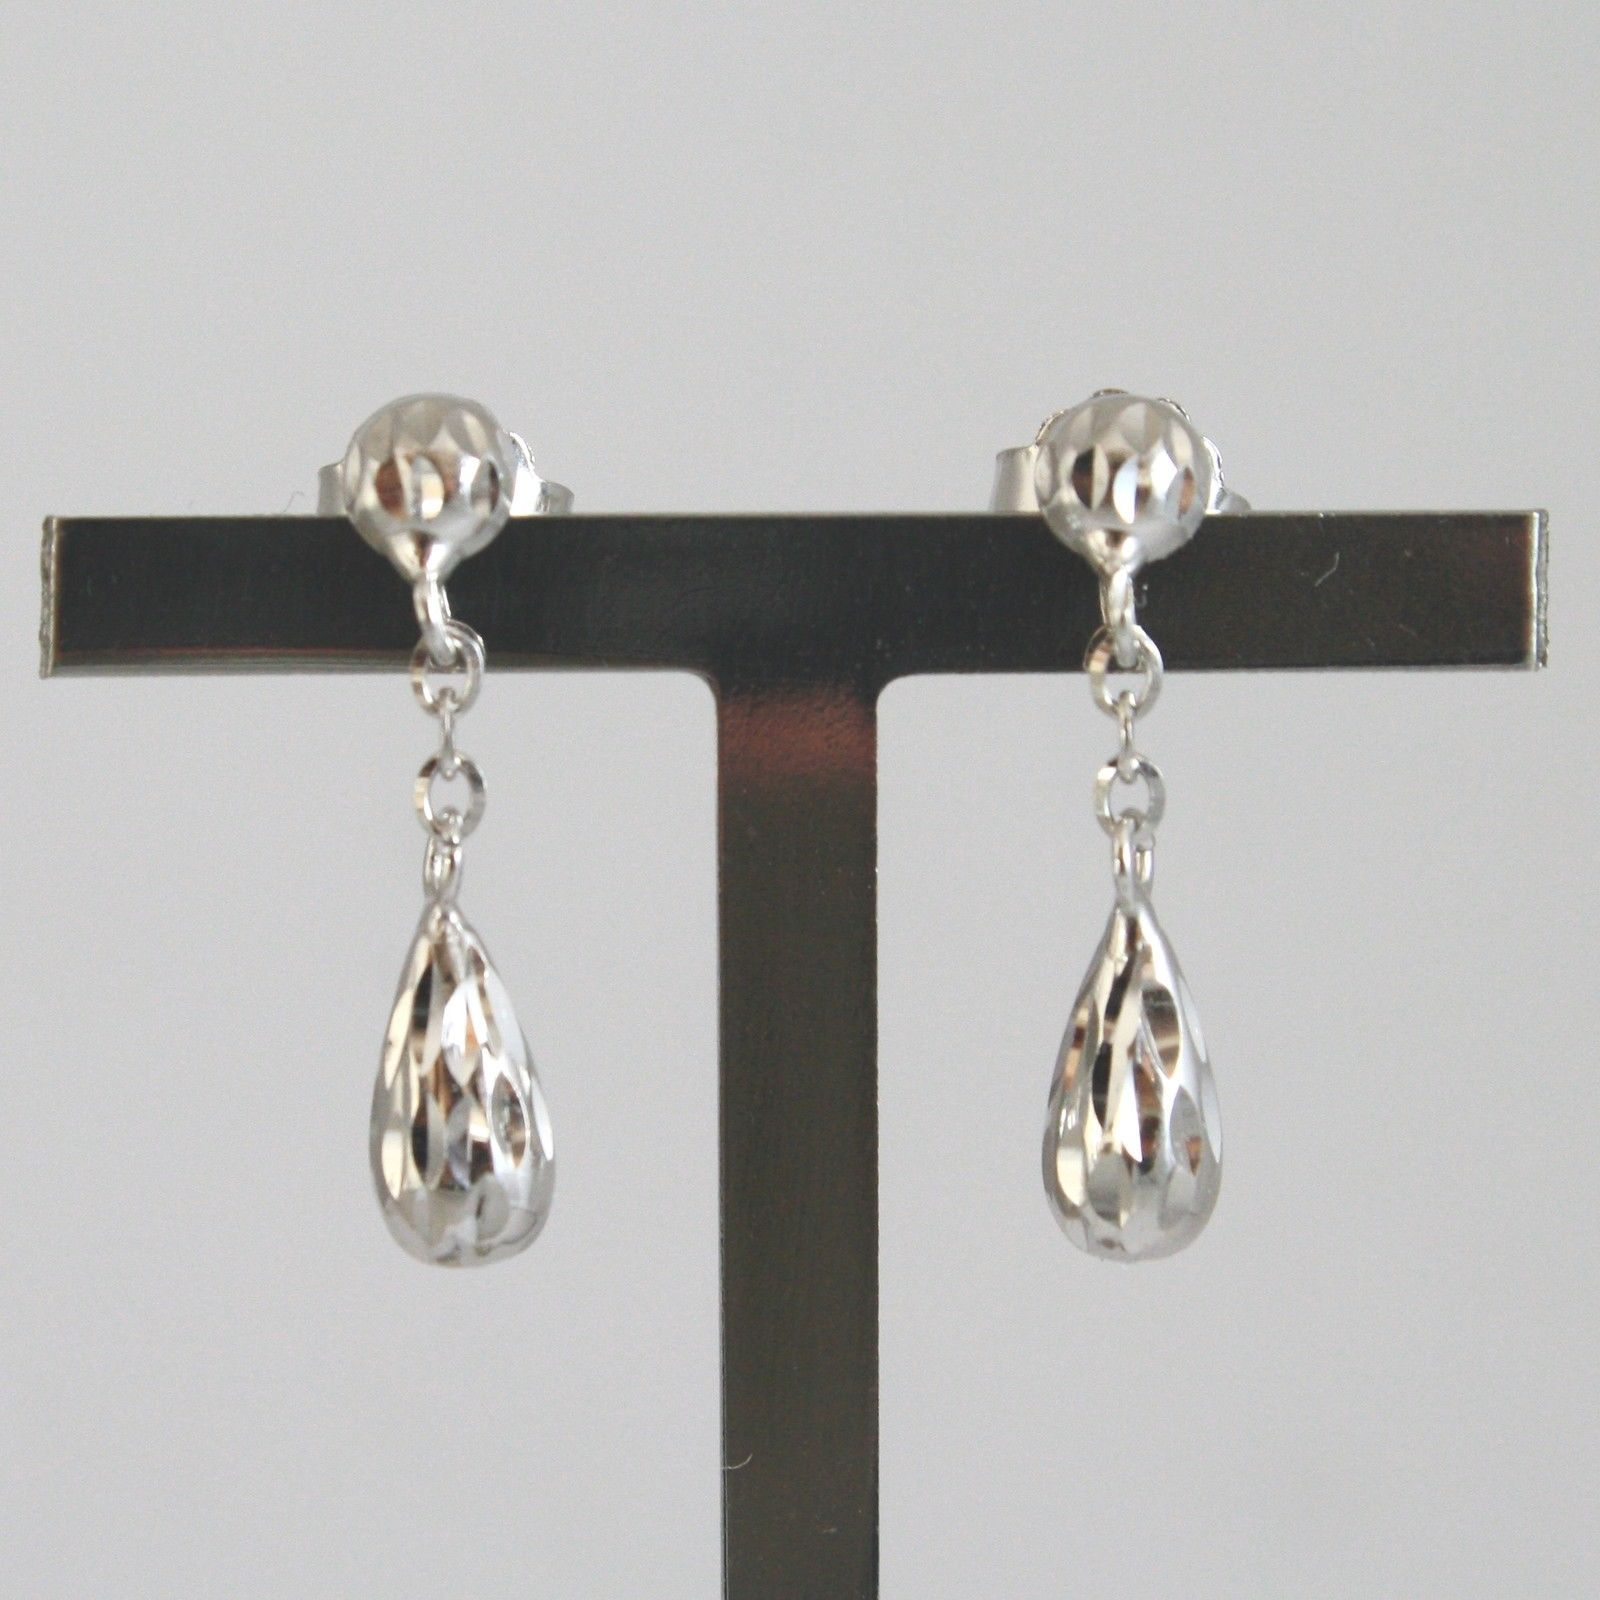 18K SOLID WHITE GOLD EARRINGS WITH HAMMER DROPS LENGTH 0,83 IN MADE IN ITALY 18K